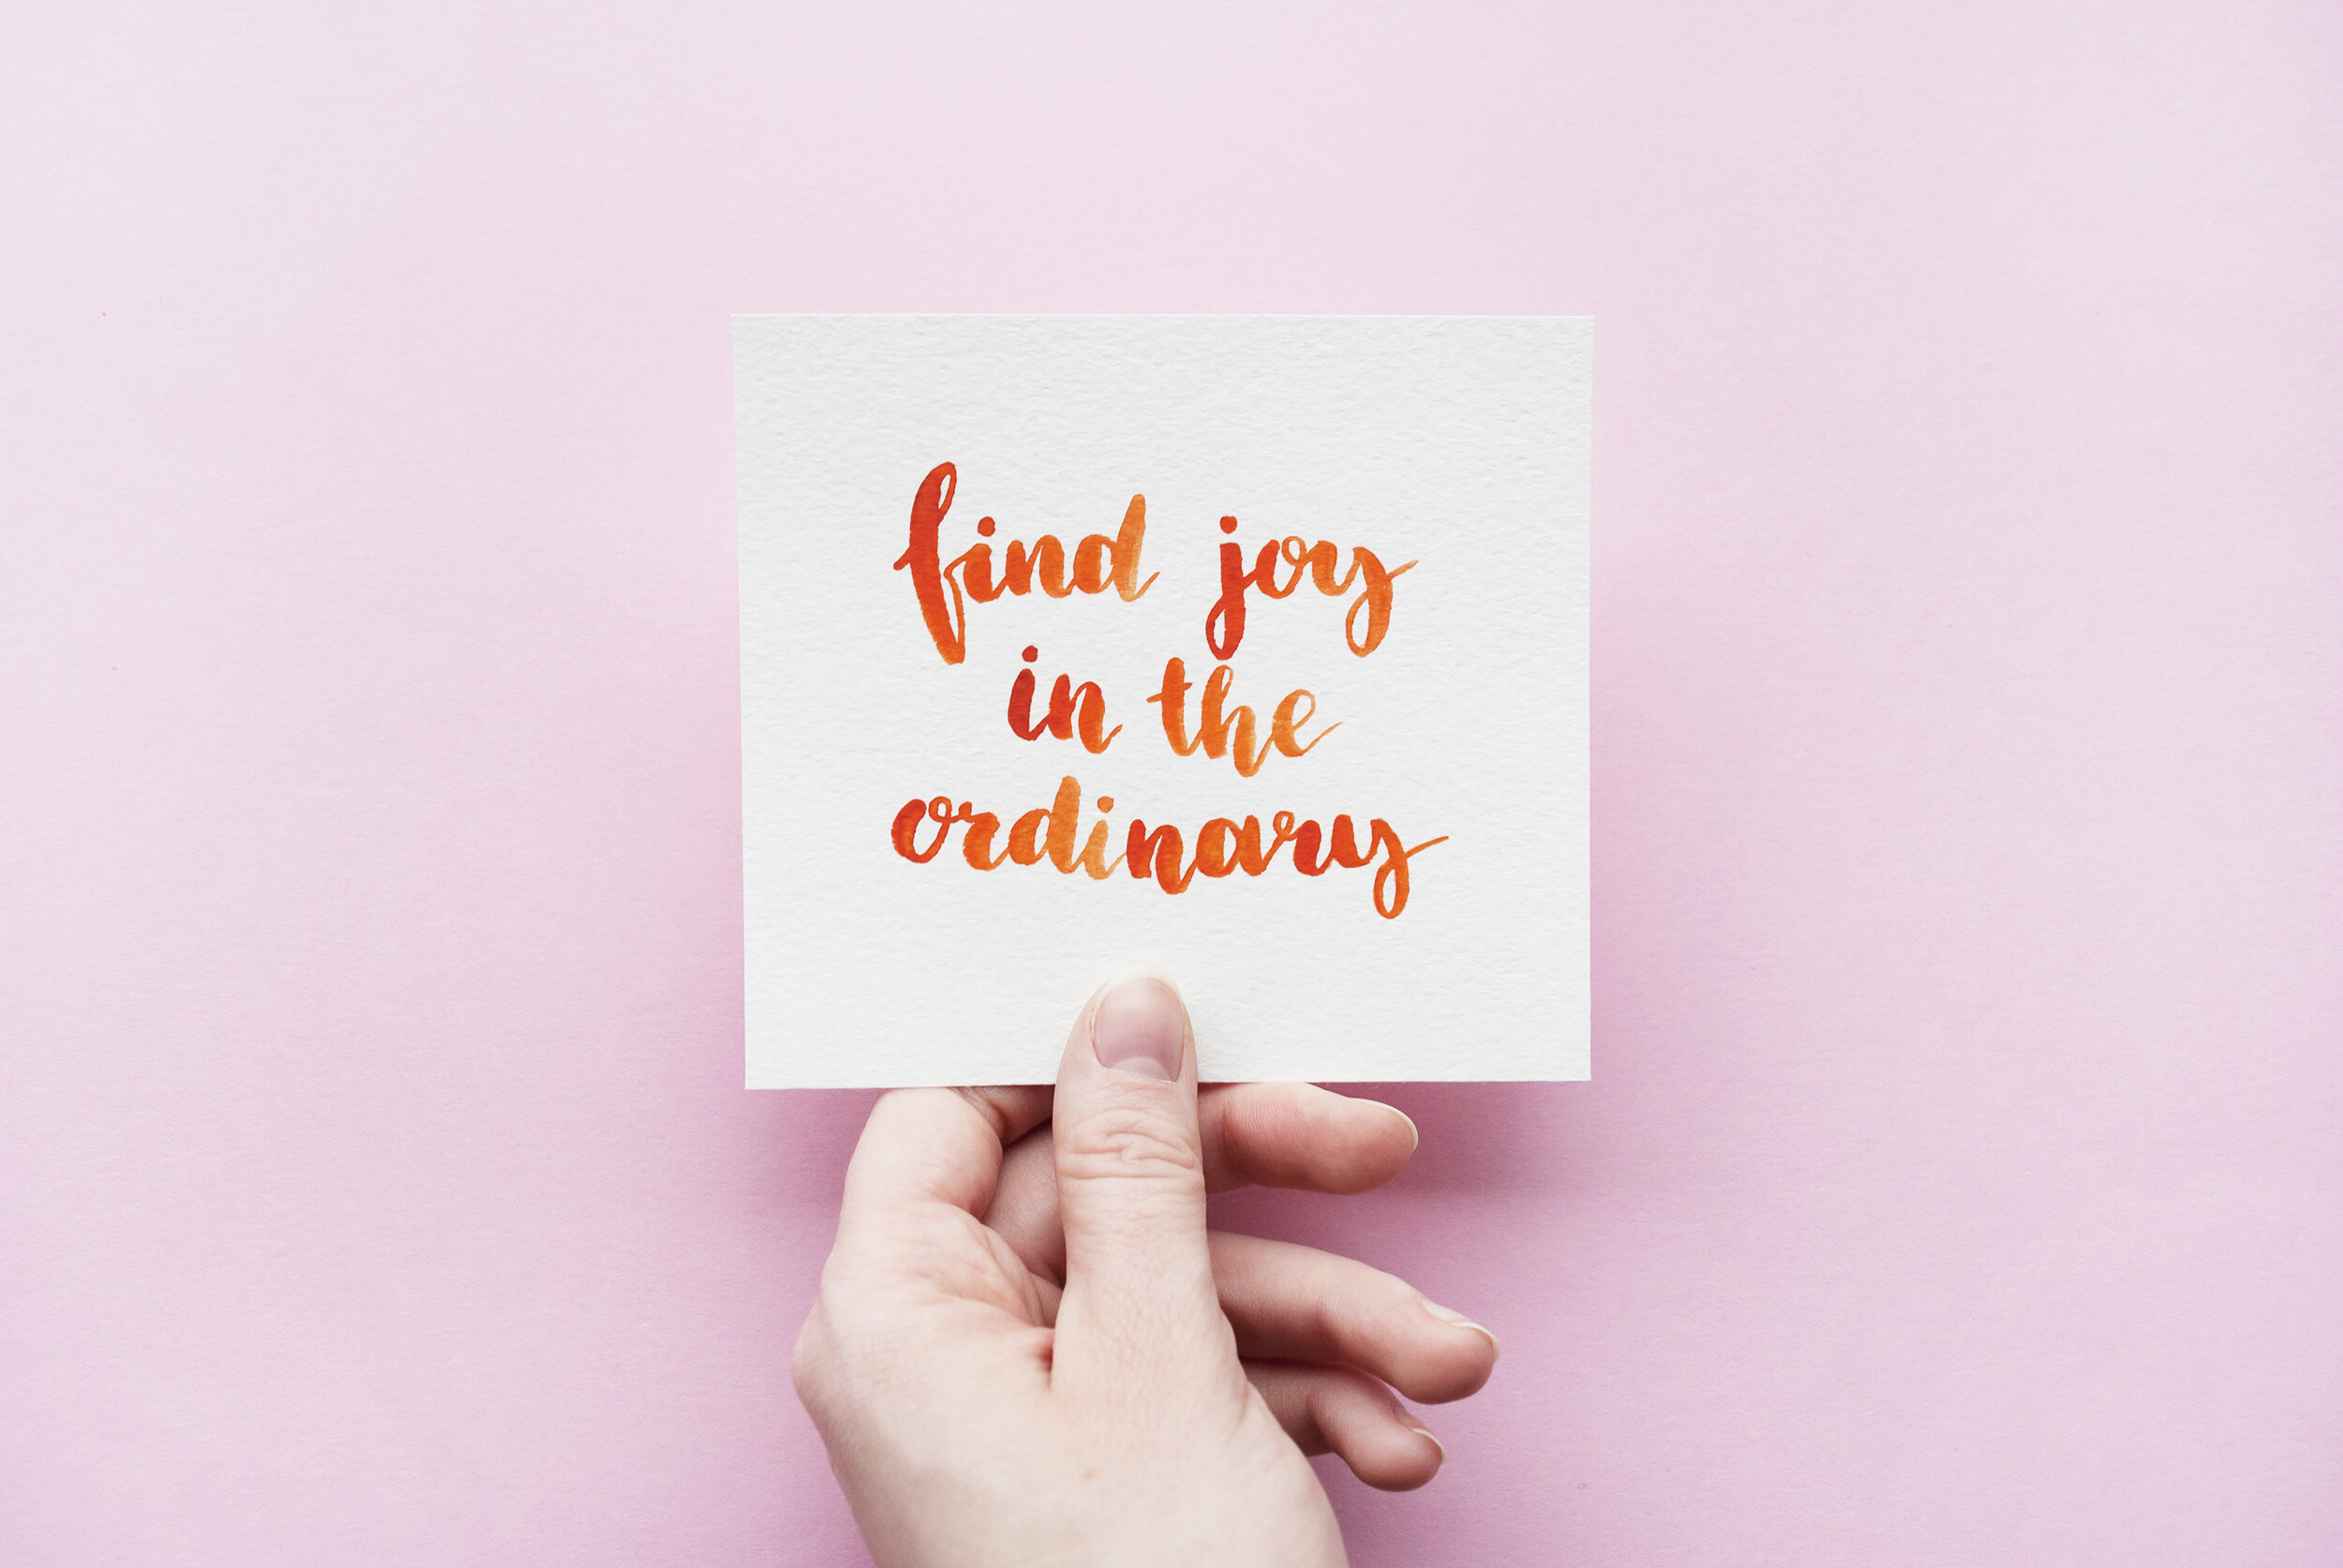 """Minimal composition with girl's hand holding card with inspirational quote """"Find joy in the ordinary"""" written in calligraphy style on paper on a pink background. Flat lay"""